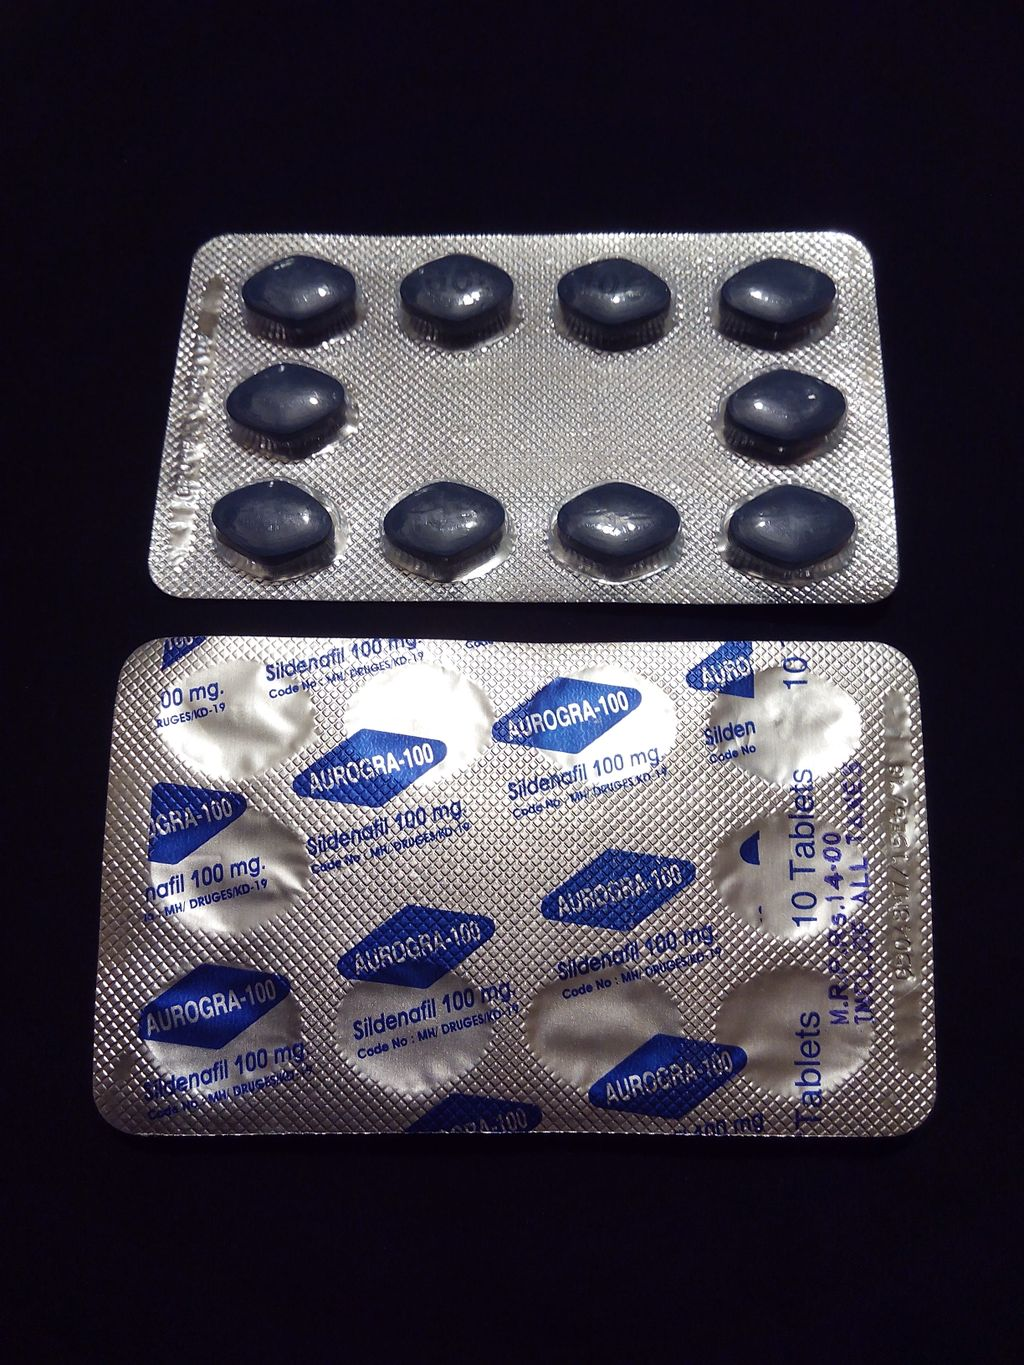 Cheap doxycycline tablets